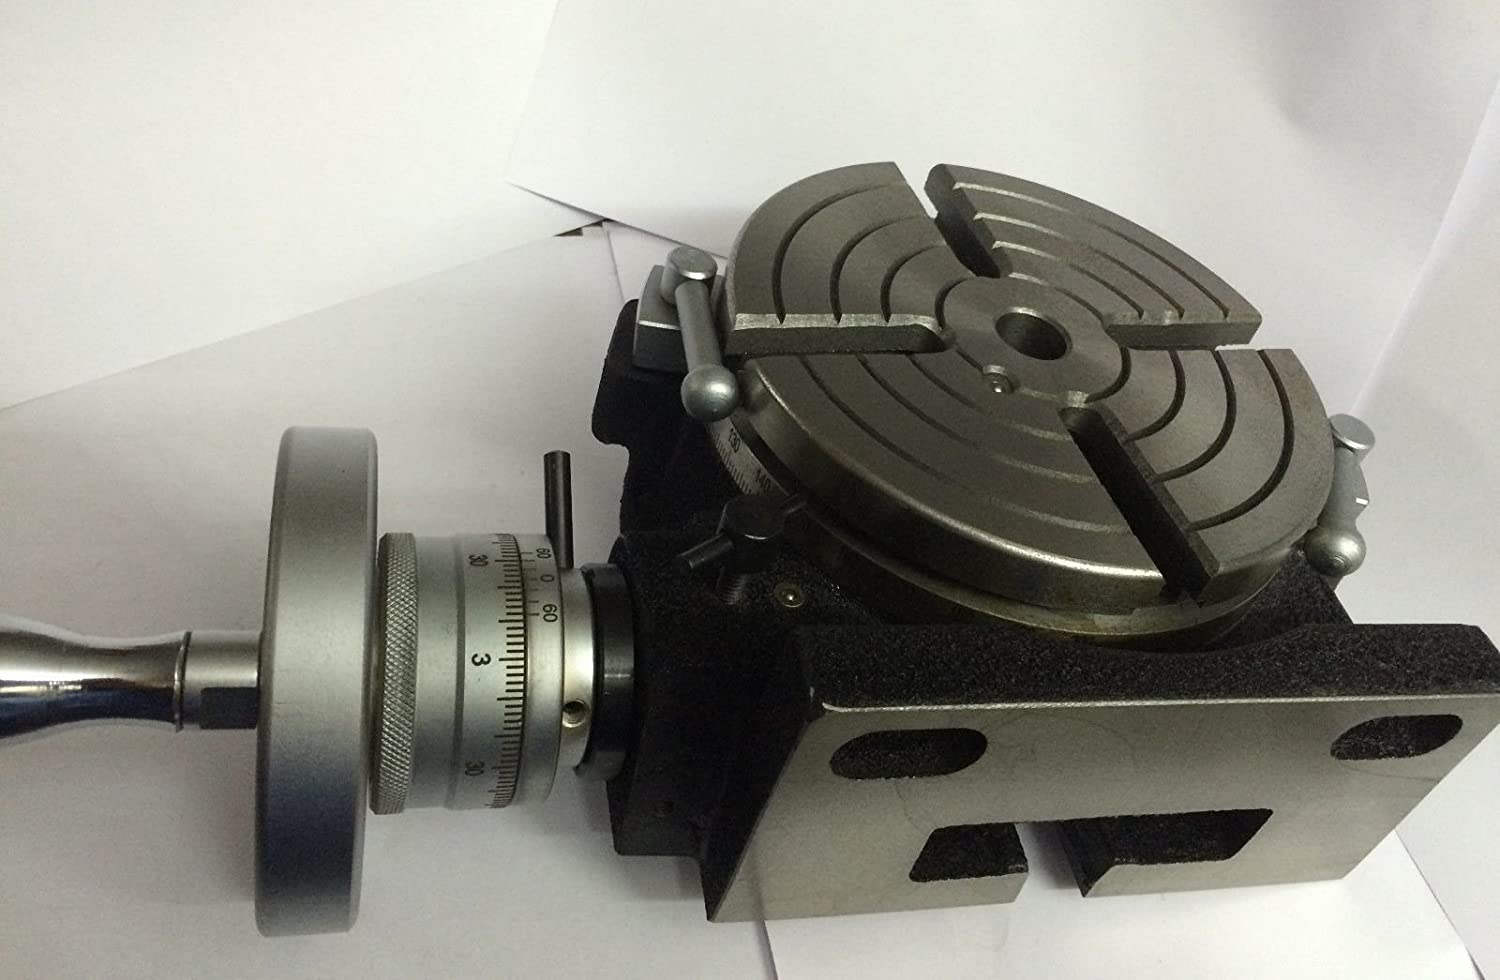 6 150 mm Precision HV6-4 Slots Rotary Table with M8 Clamp Kit for Milling